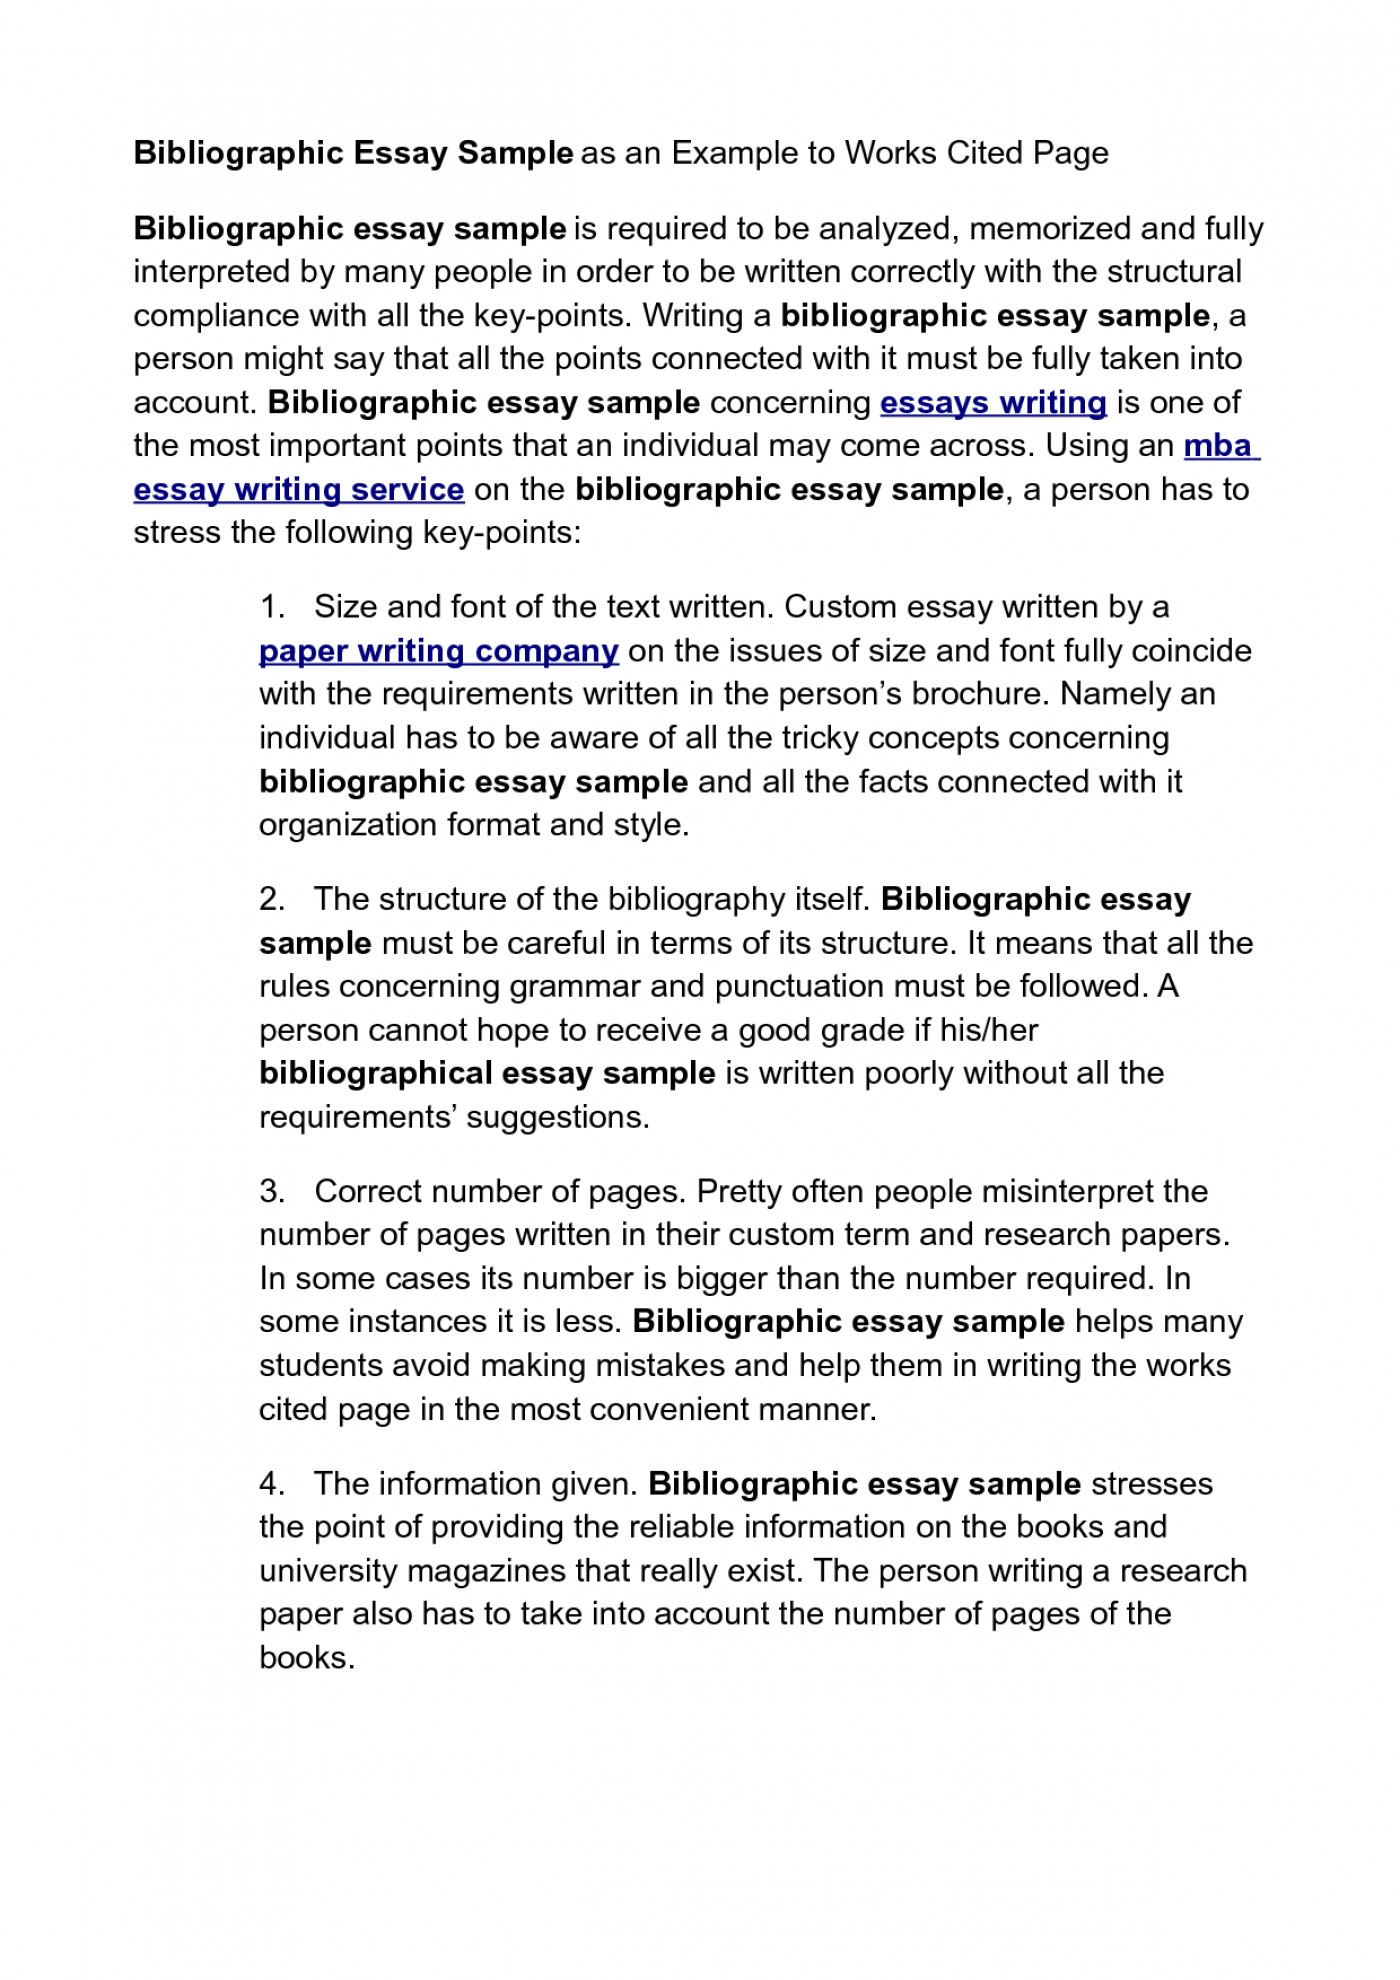 018 How To Cite An Essay Example Sample Persuasive With Works Cited Of Mla L Archaicawful In A Textbook Within Book Apa 8 1400